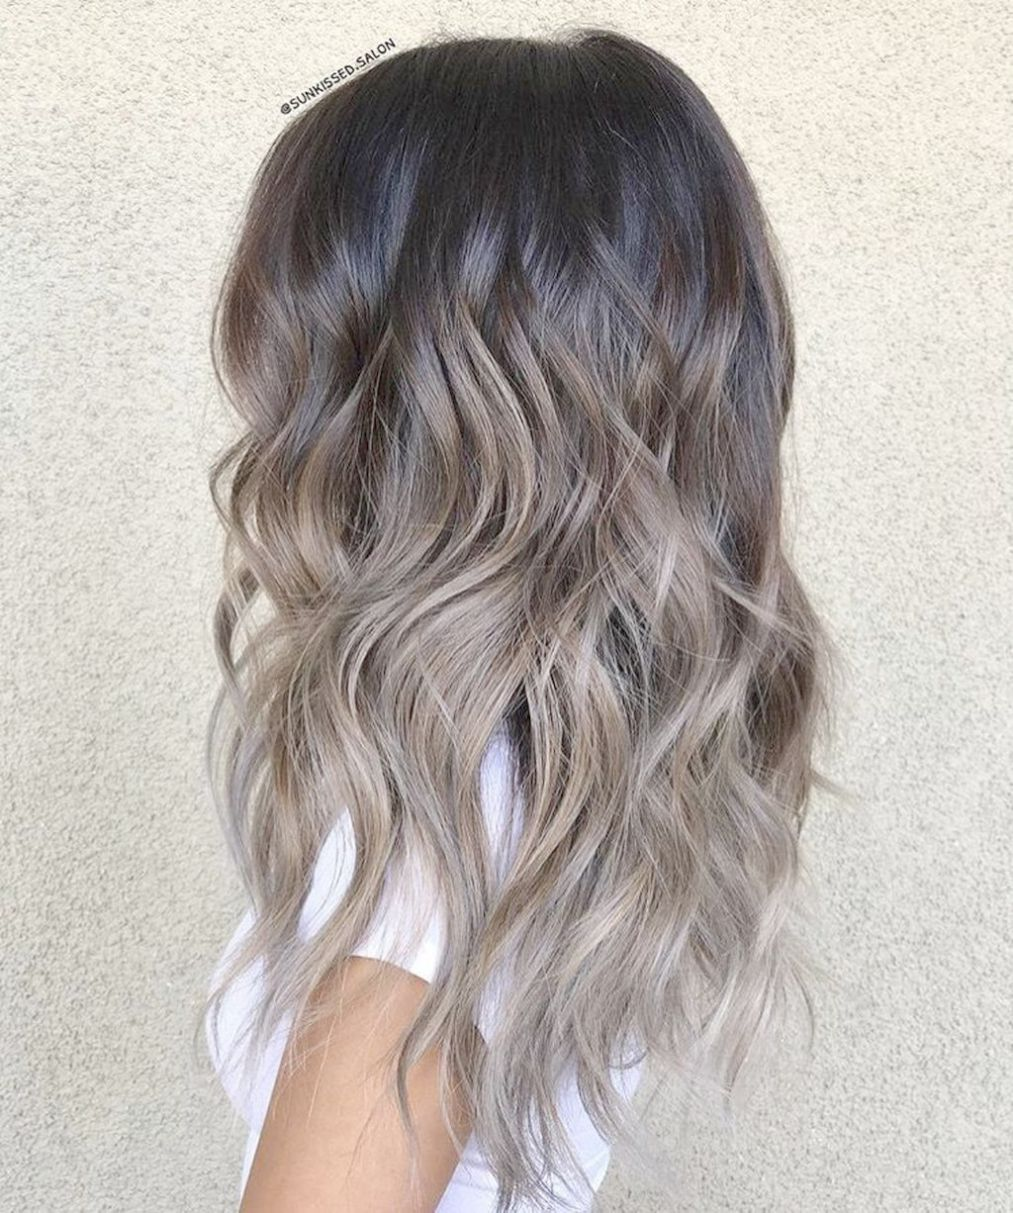 Cool Hair Color Ideas For Brunettes. Hair Salon Near Me Riverside